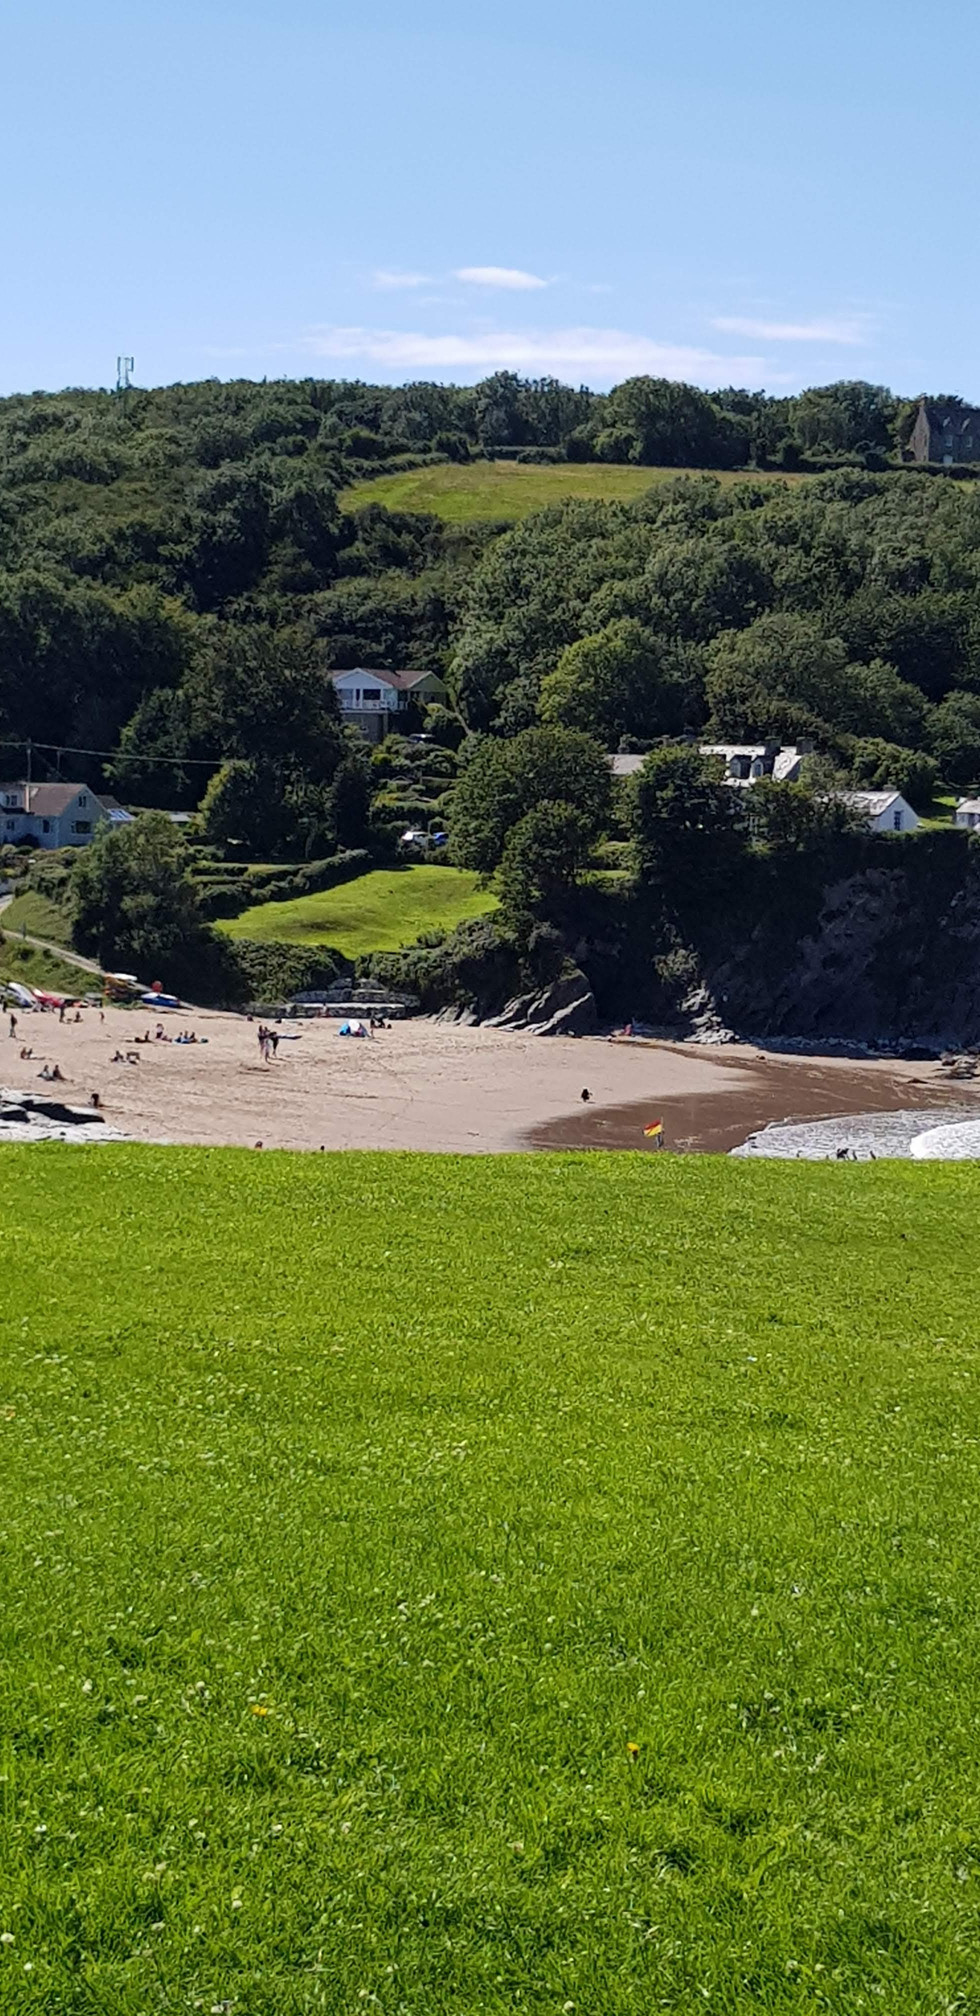 Aberporth beach - great for kids and dogs